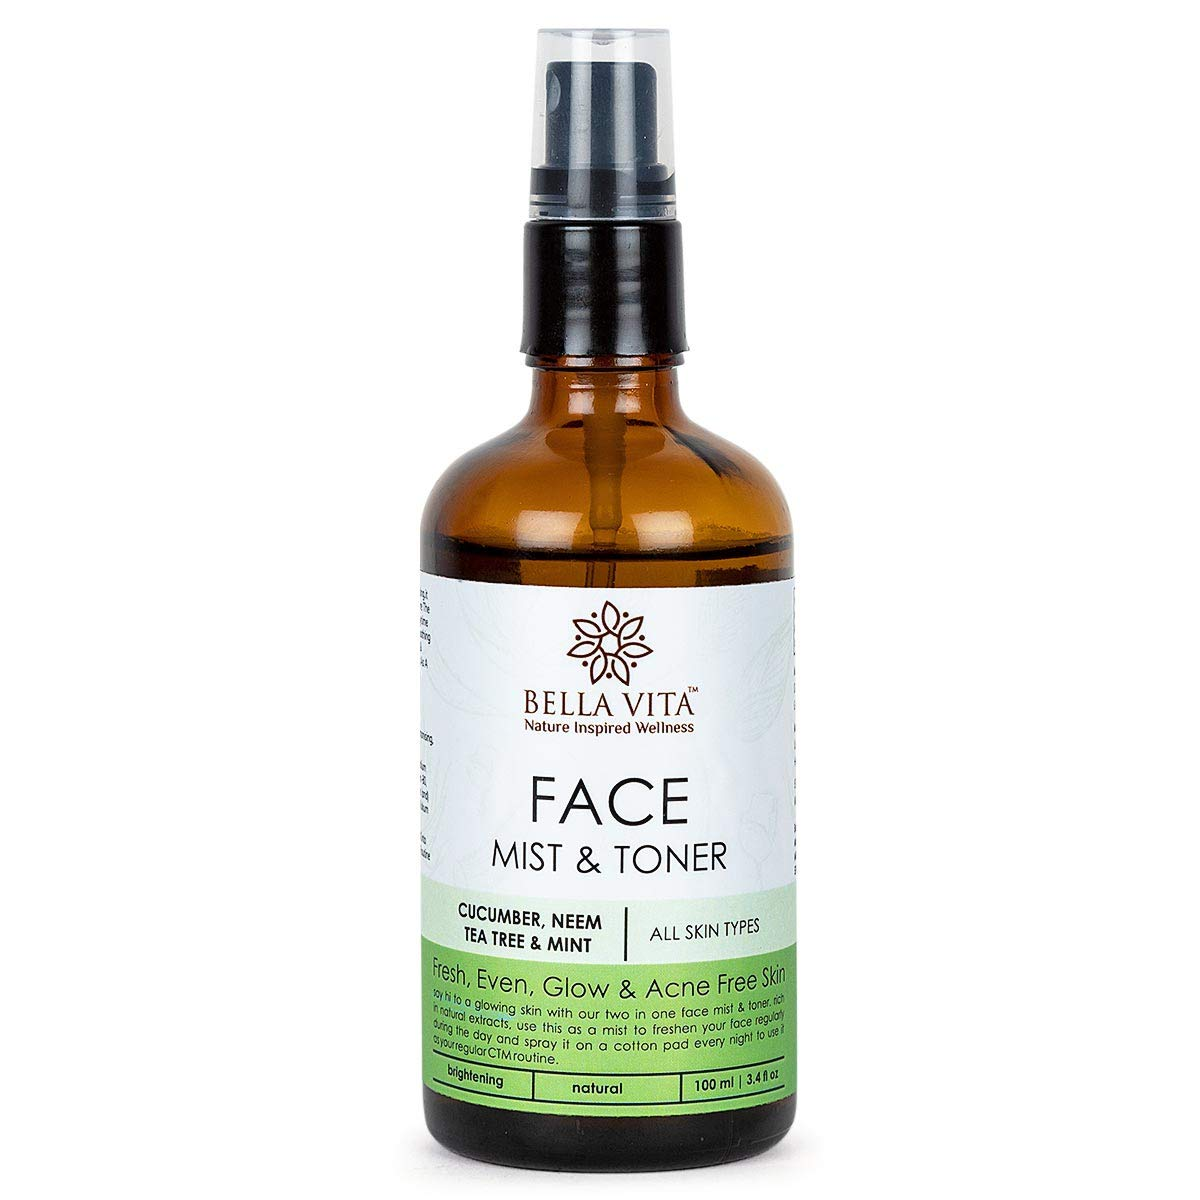 Bella Vita Organic Natural Face Mist & Toner For Glowing Skin & Acne Free Skin With Tea Tree, Cucumber, Neem & Mint